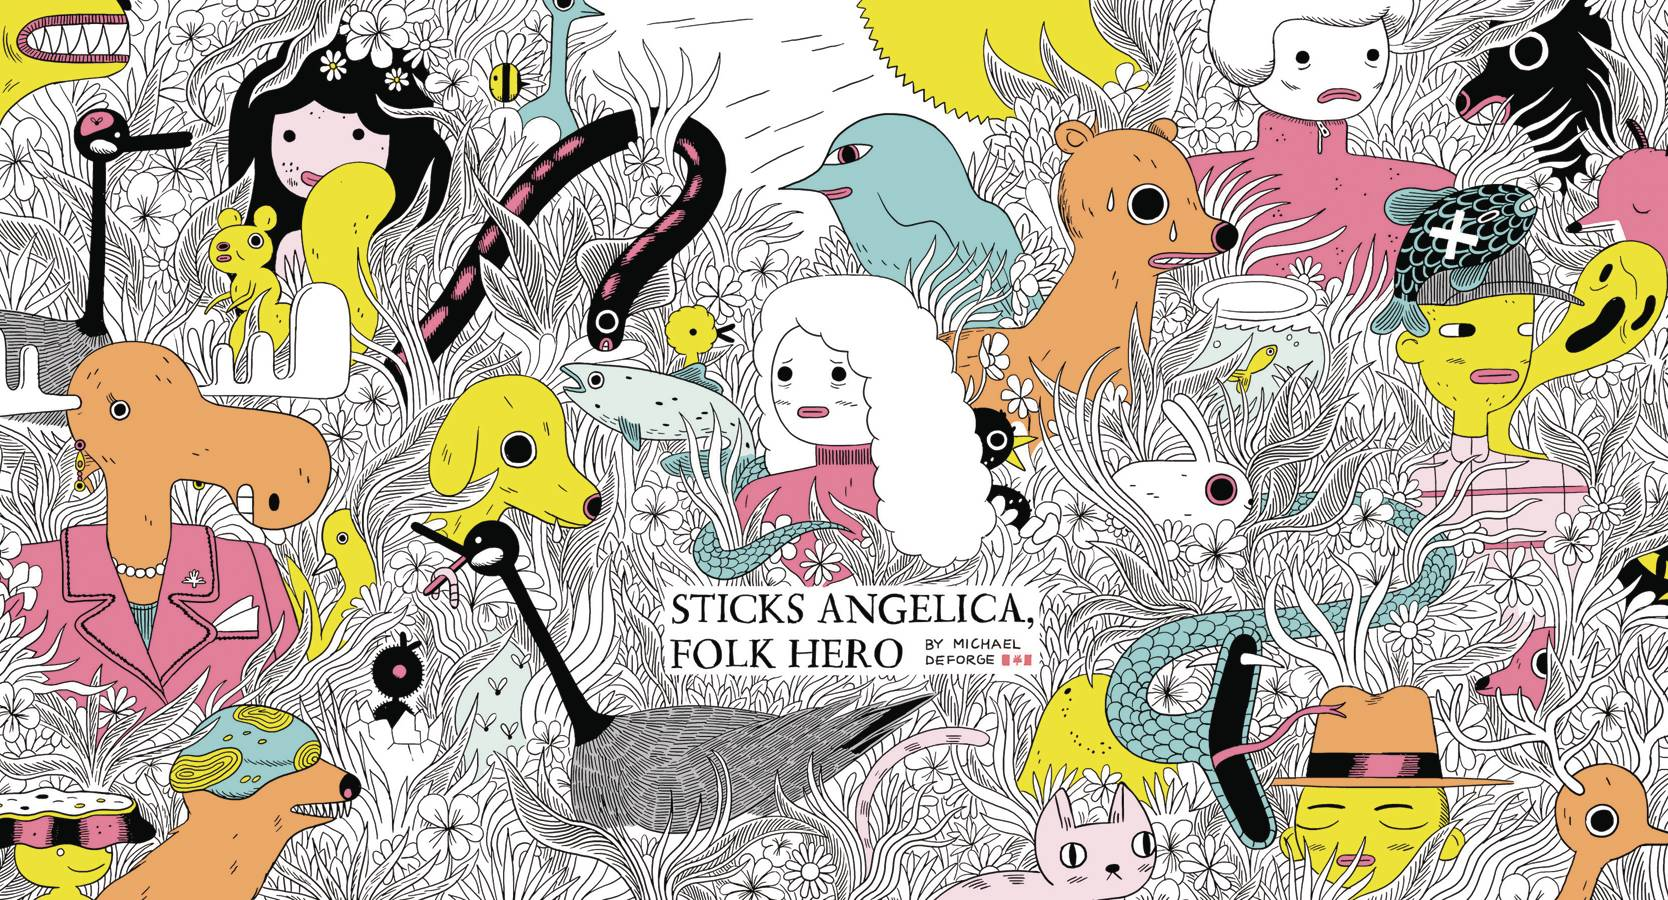 Sticks Angelica by Michael DeForge